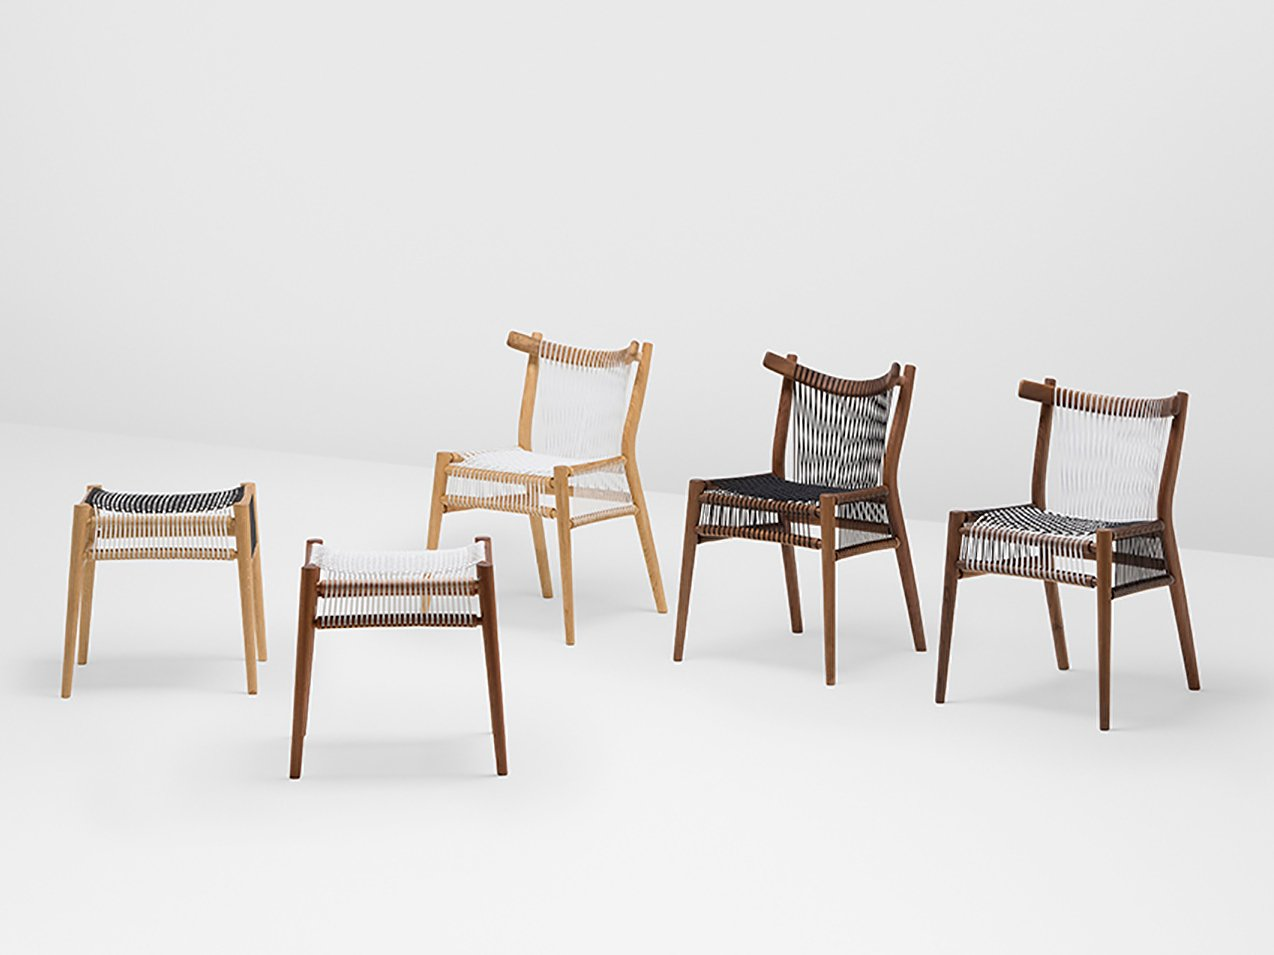 Loom collection by h furniture inspired by mexican for H furniture collection loom